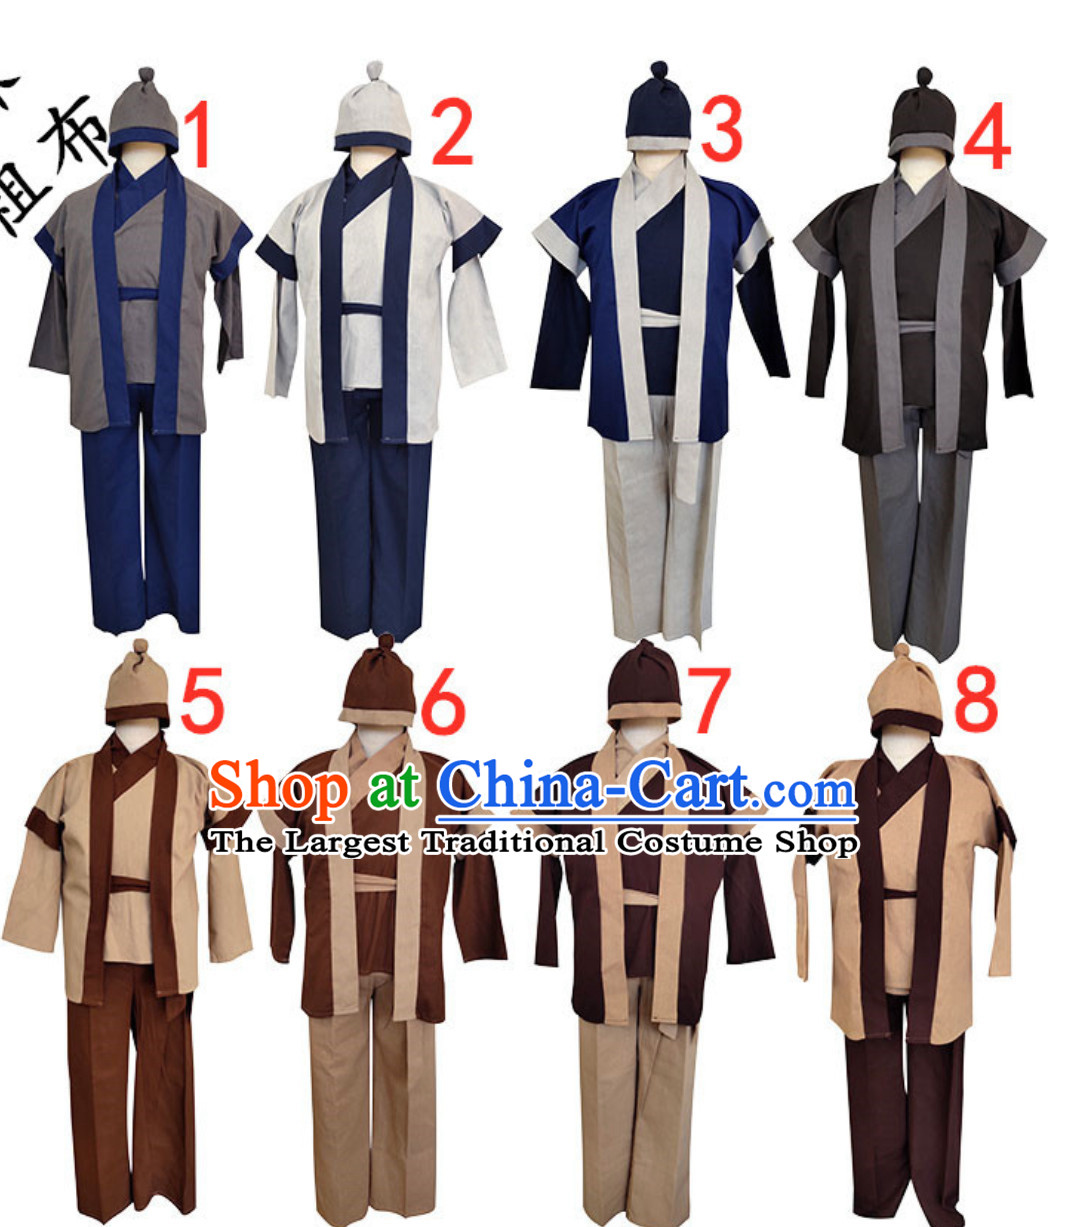 Ancient Chinese Servant Costume Poor People Clothes Costume Farmer Costumes Chinese Civilian Costumes for Men and Women